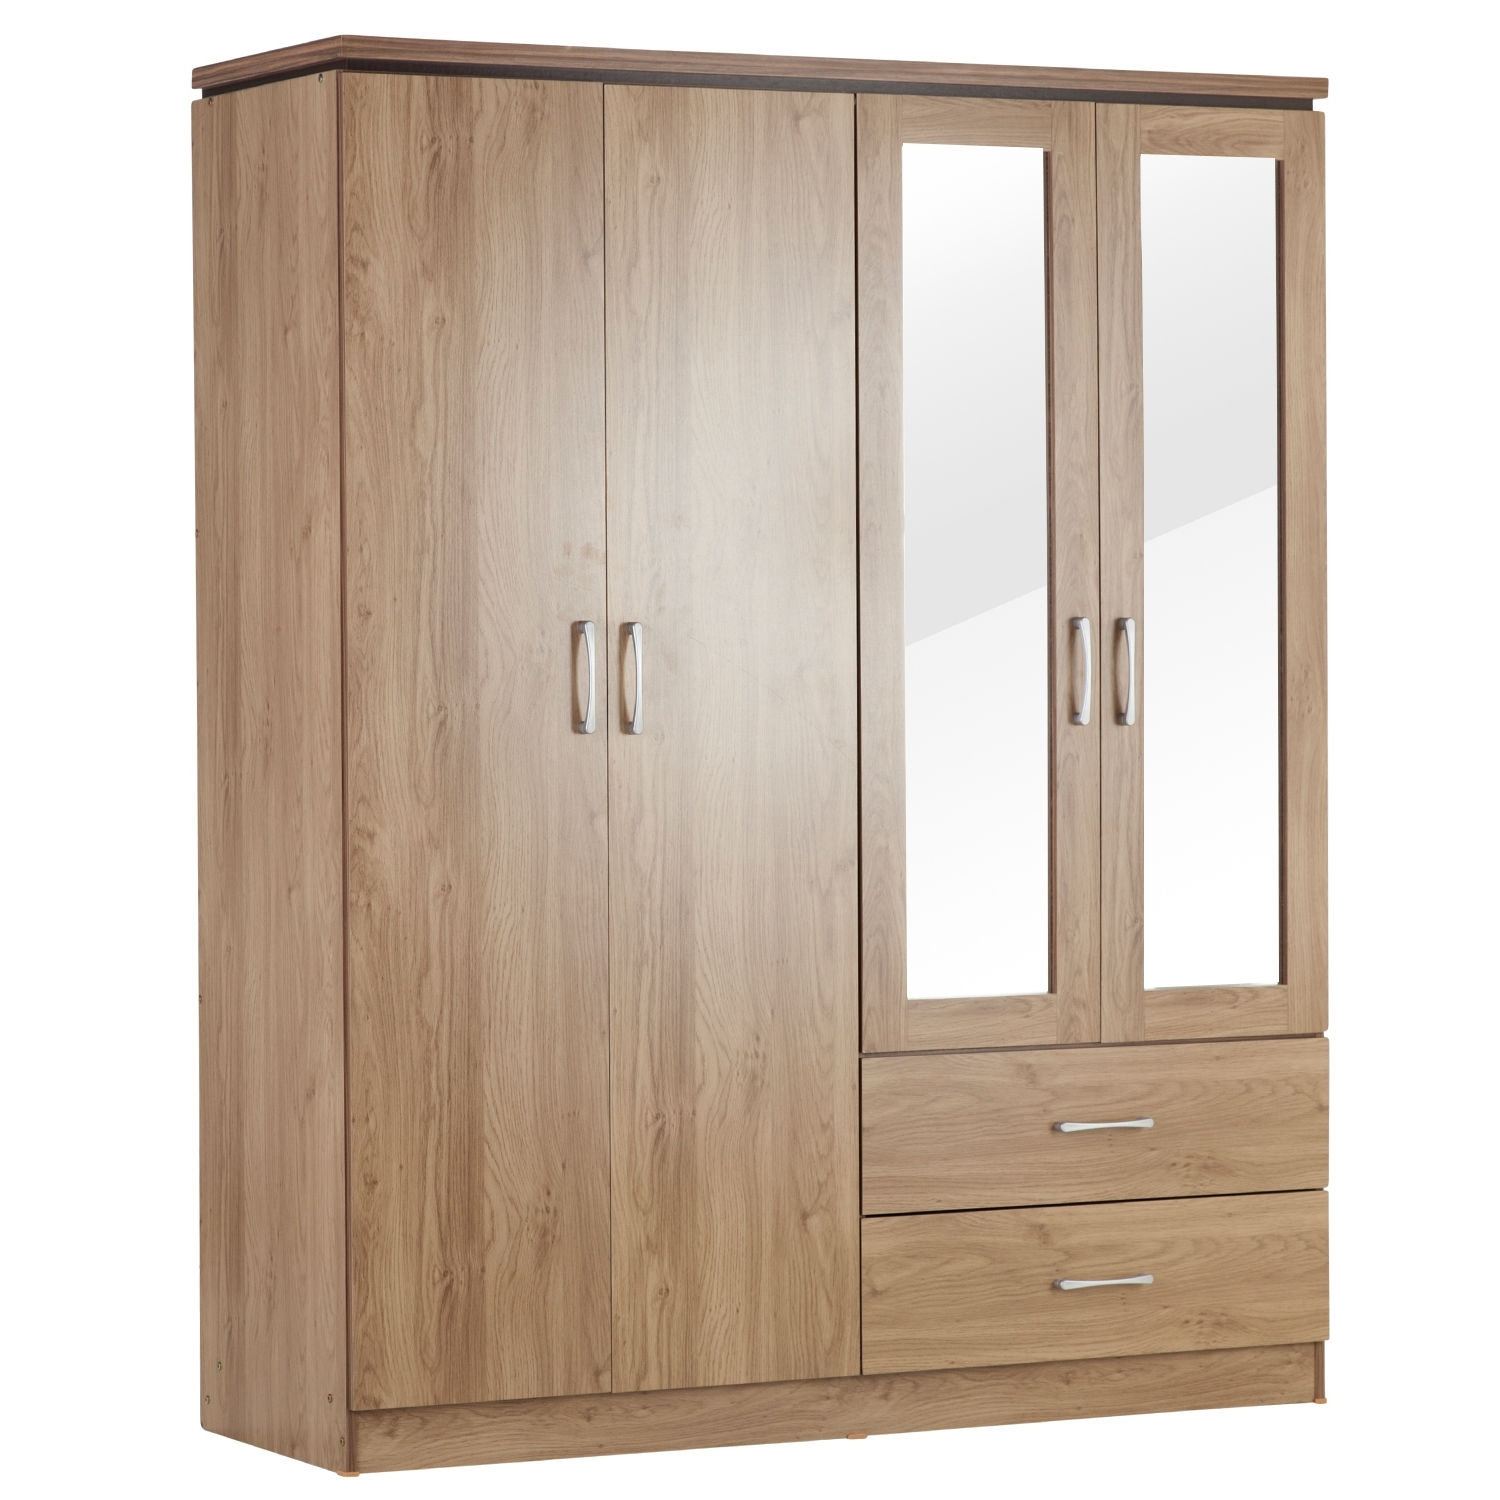 Charles 4 Door Wardrobe – Next Day Delivery Charles 4 Door Pertaining To Fashionable Cheap 4 Door Wardrobes (View 4 of 15)